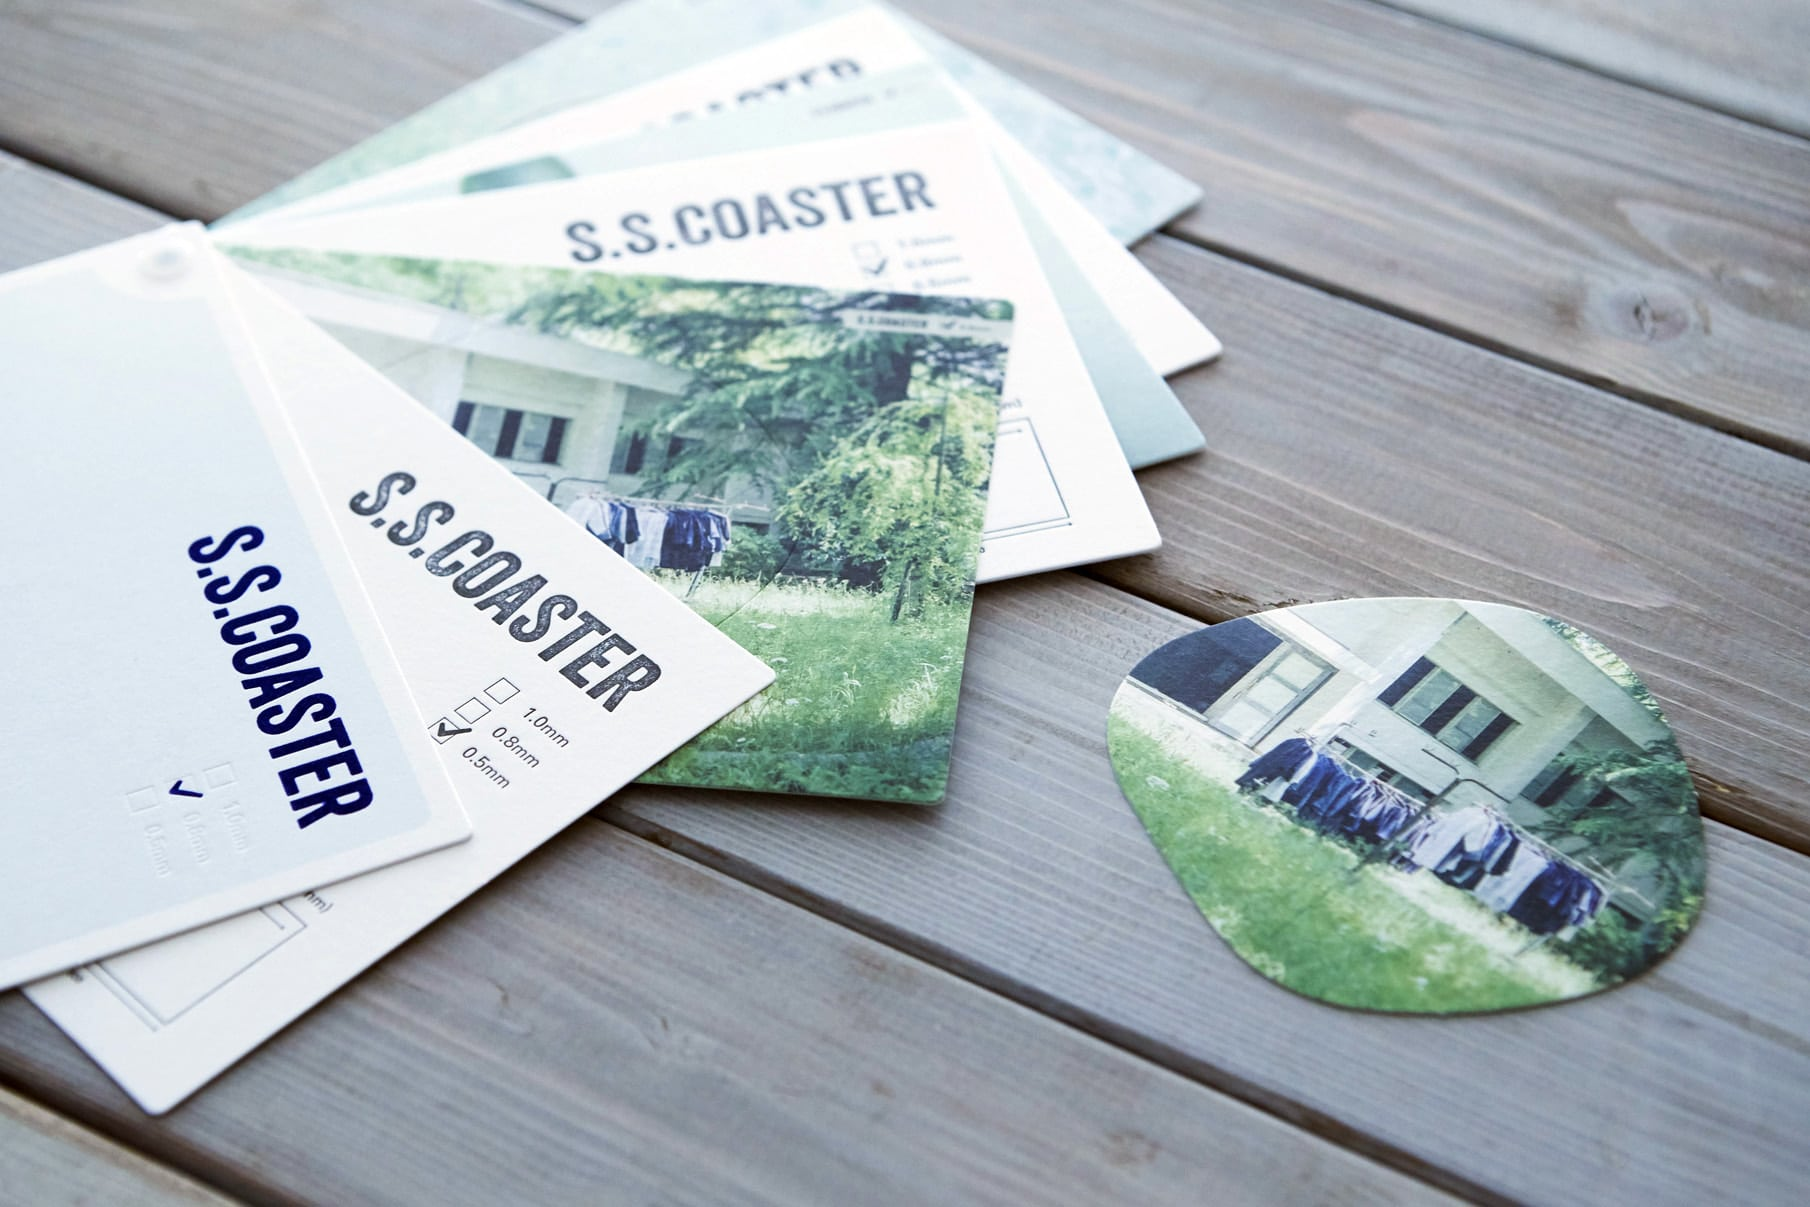 S.S.Coaster - Promotion Book 4